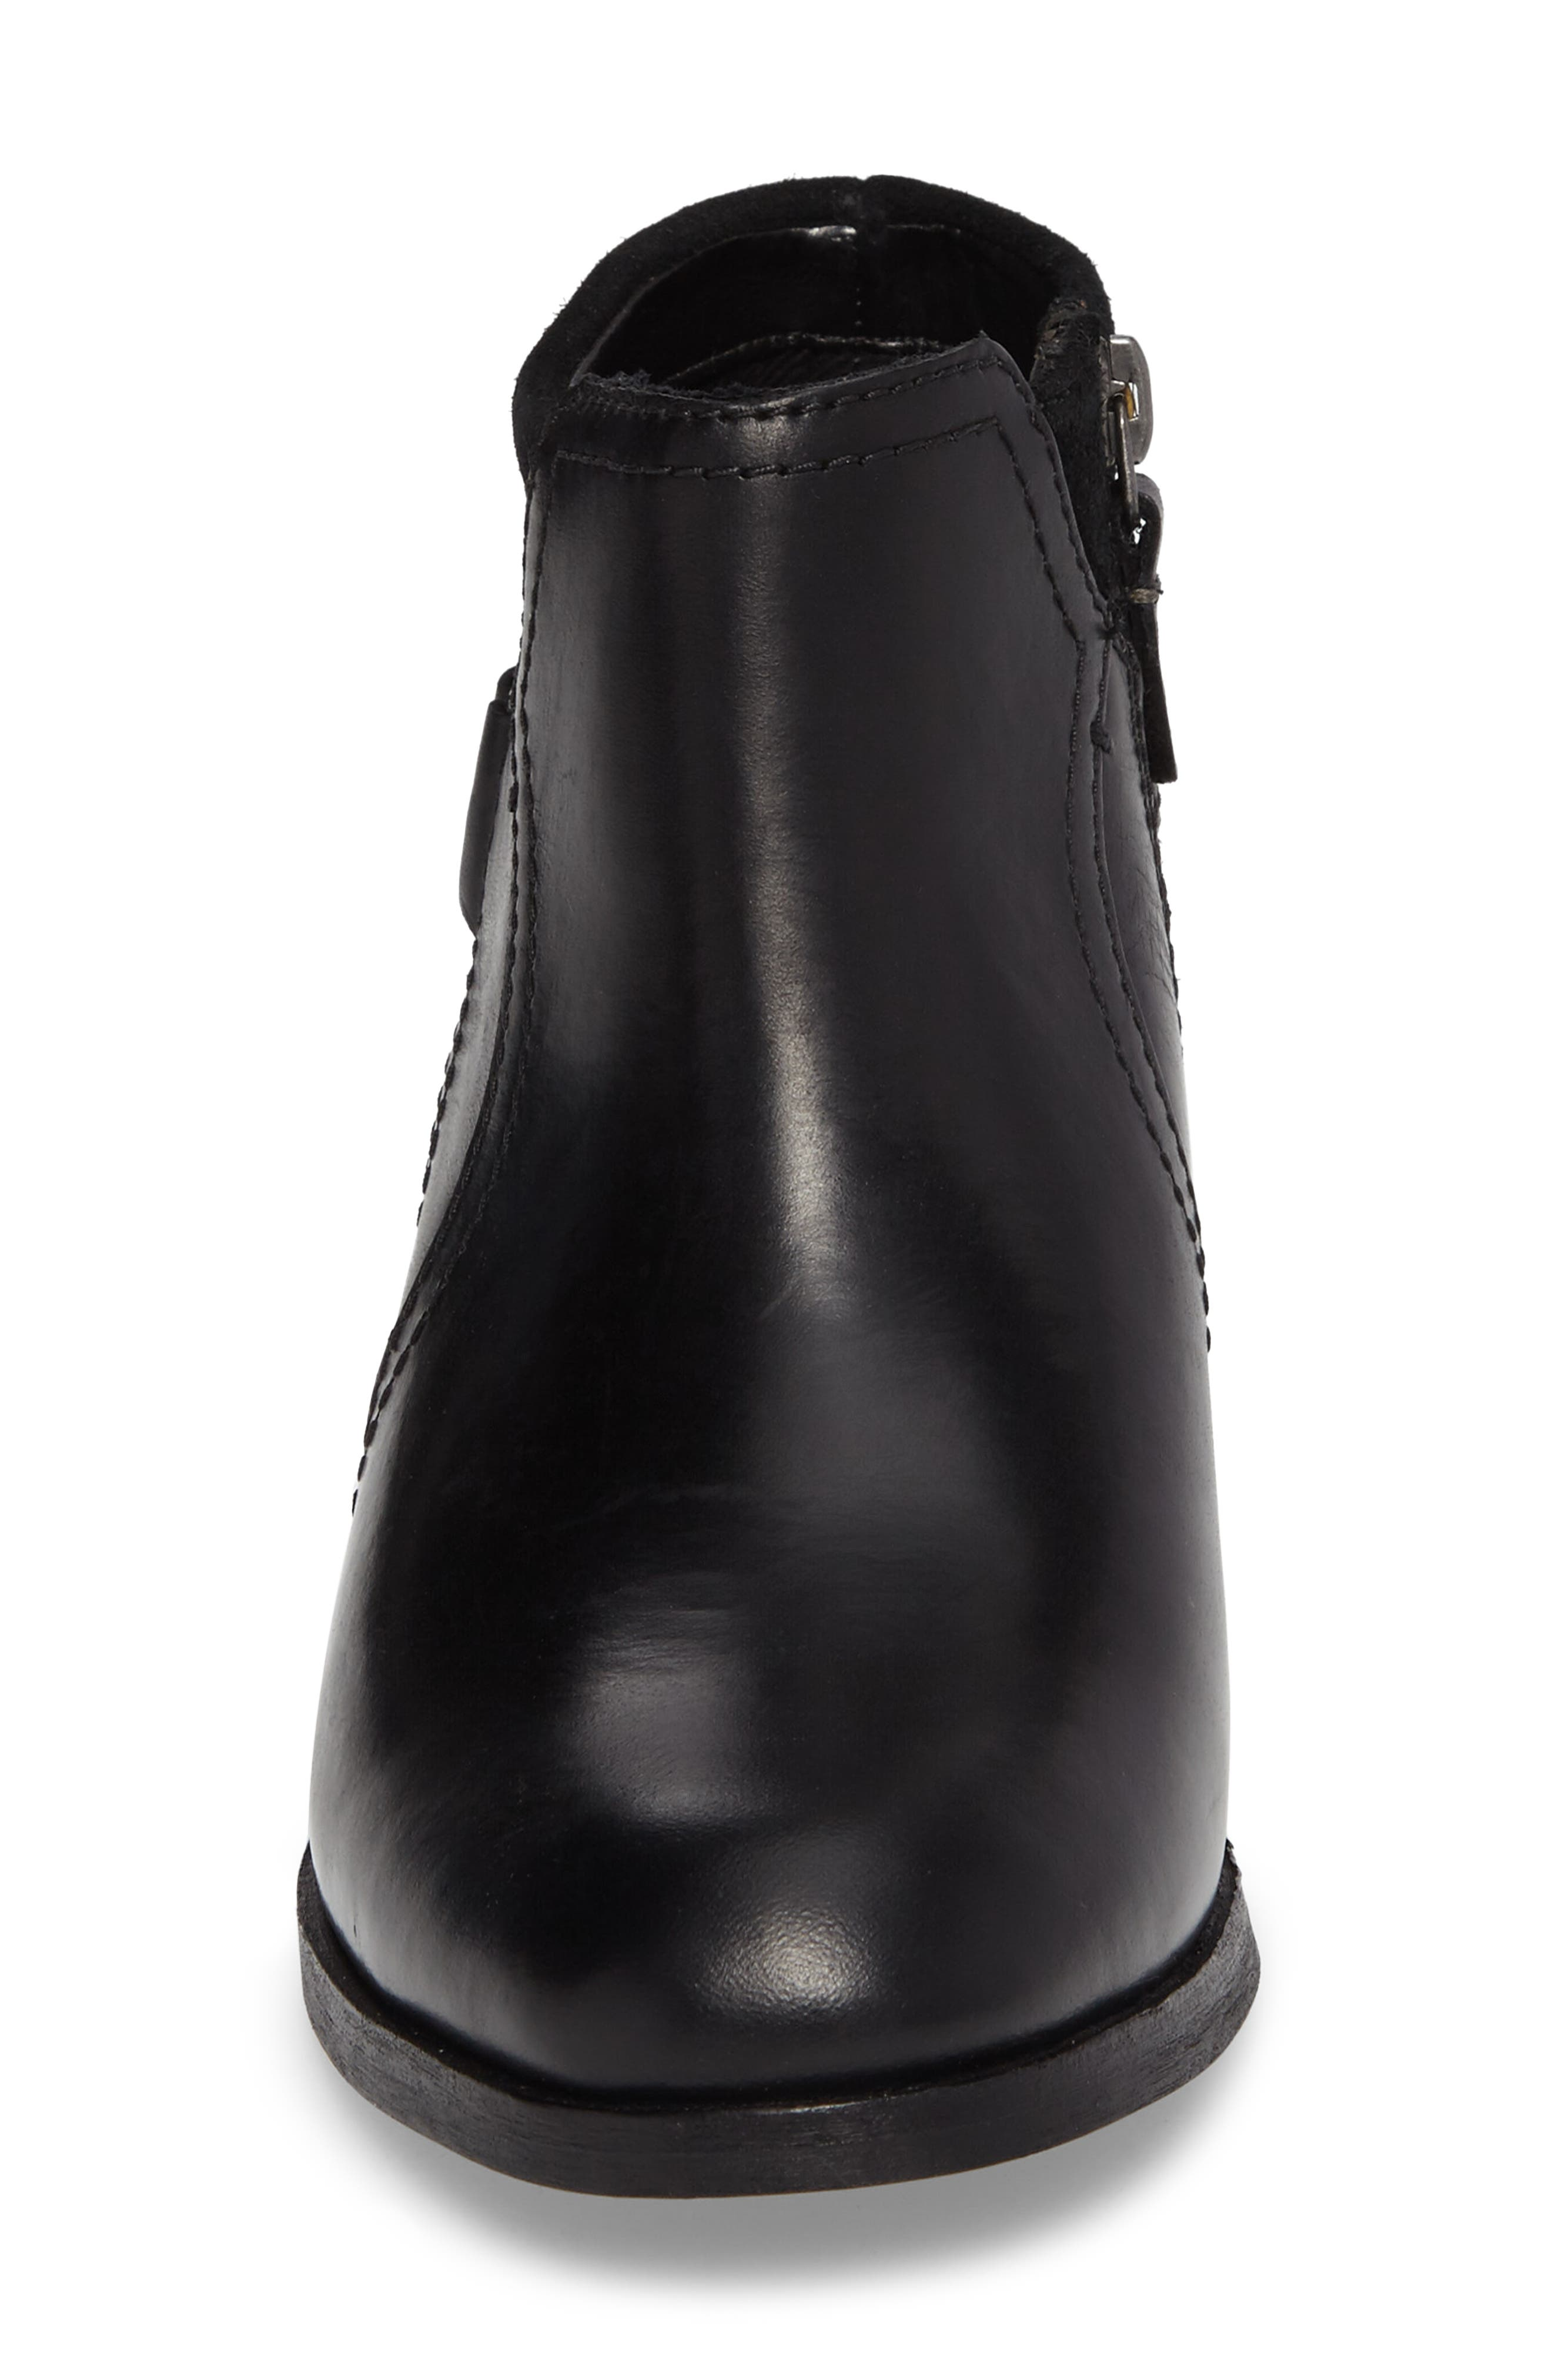 Maypearl Lilac Bootie,                             Alternate thumbnail 4, color,                             Black Leather